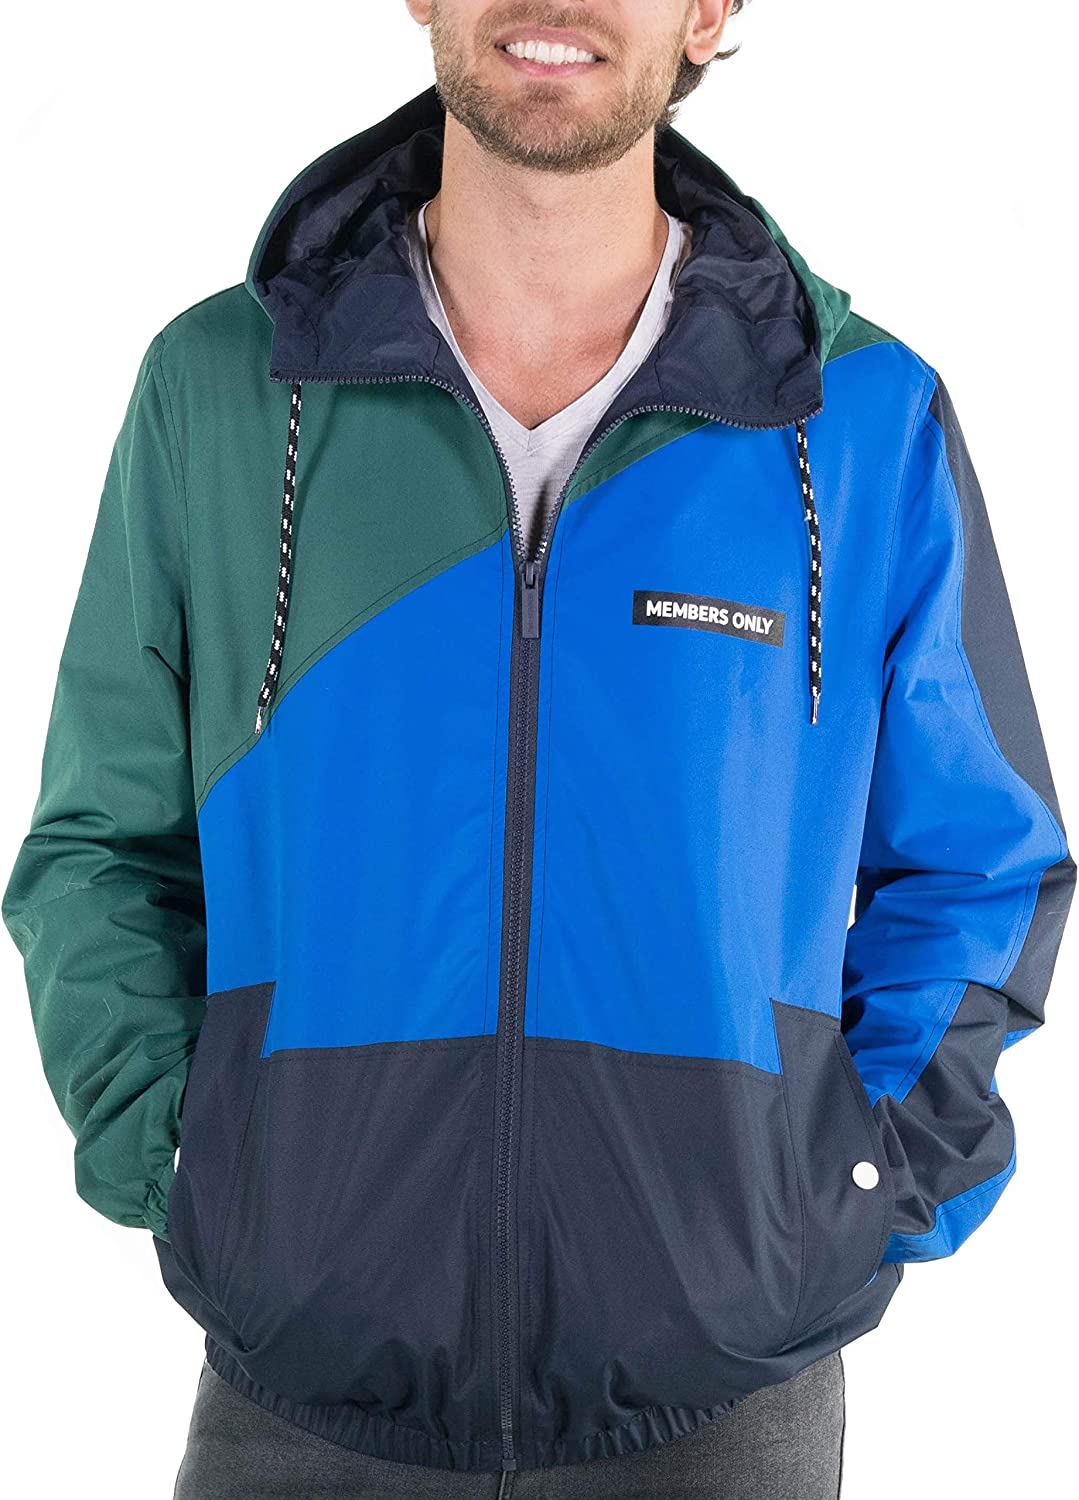 80s Windbreakers, Jackets, Coats Members Only Mens Asym Colorblock Windbreaker Hooded Jacket $59.00 AT vintagedancer.com